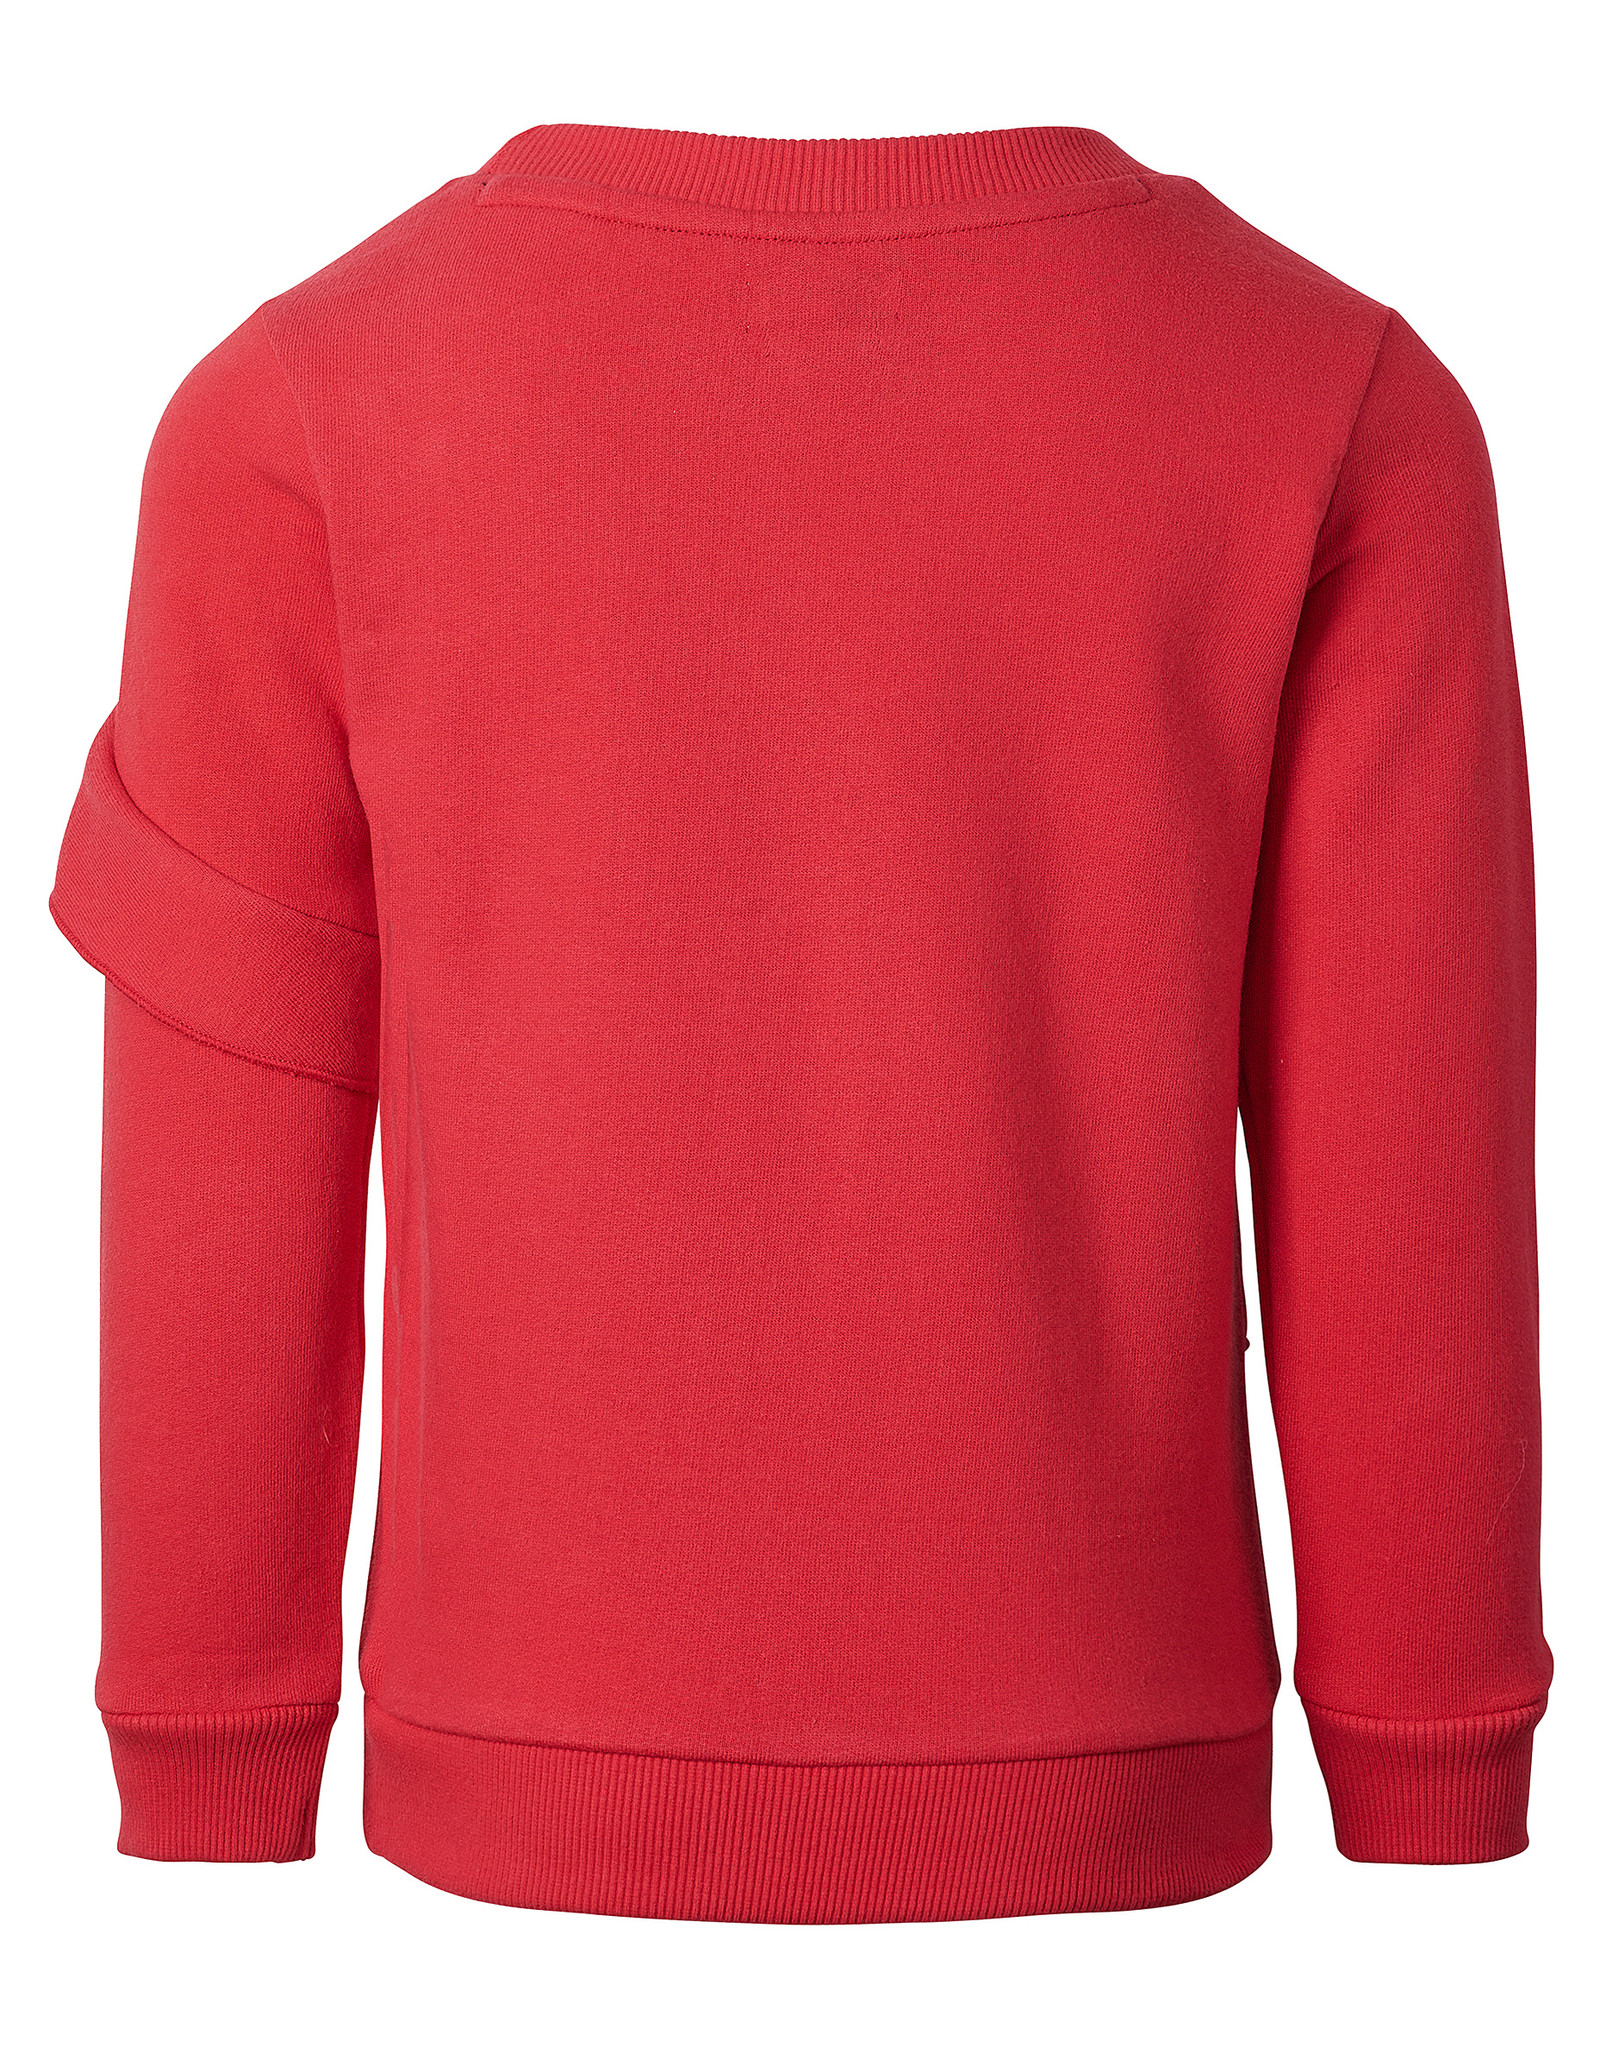 Noppies G Sweater ls Philippolis, Rococco Red